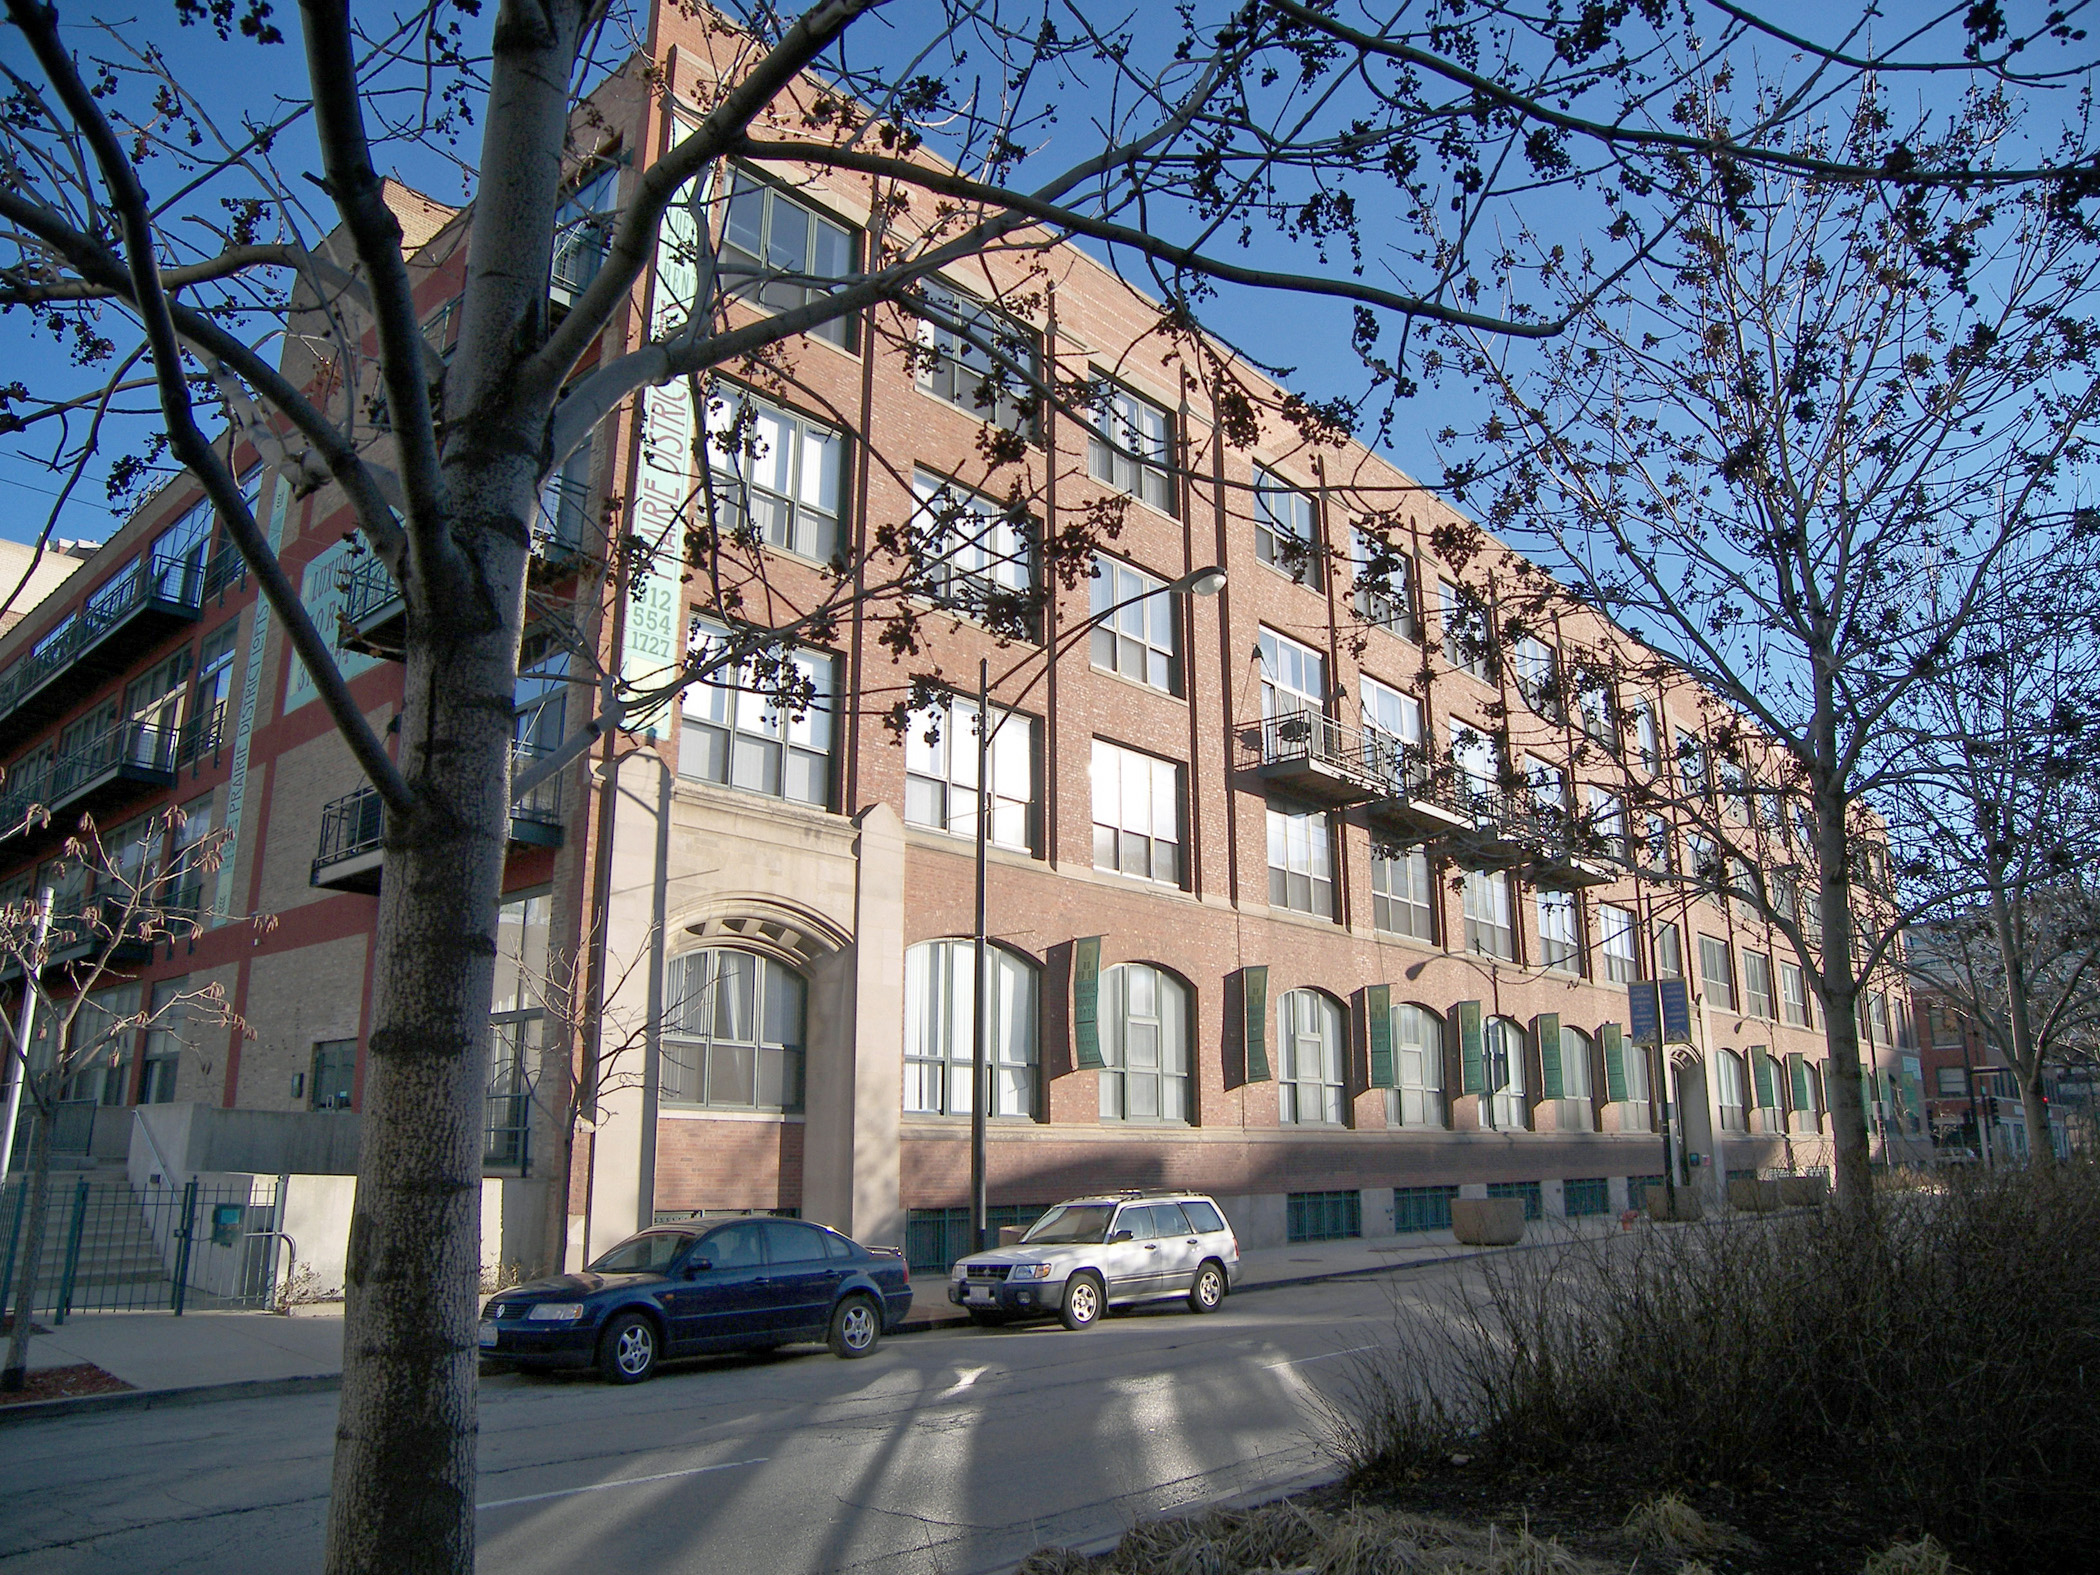 Prairie District Lofts, 1727 S Indiana Ave, Chicago